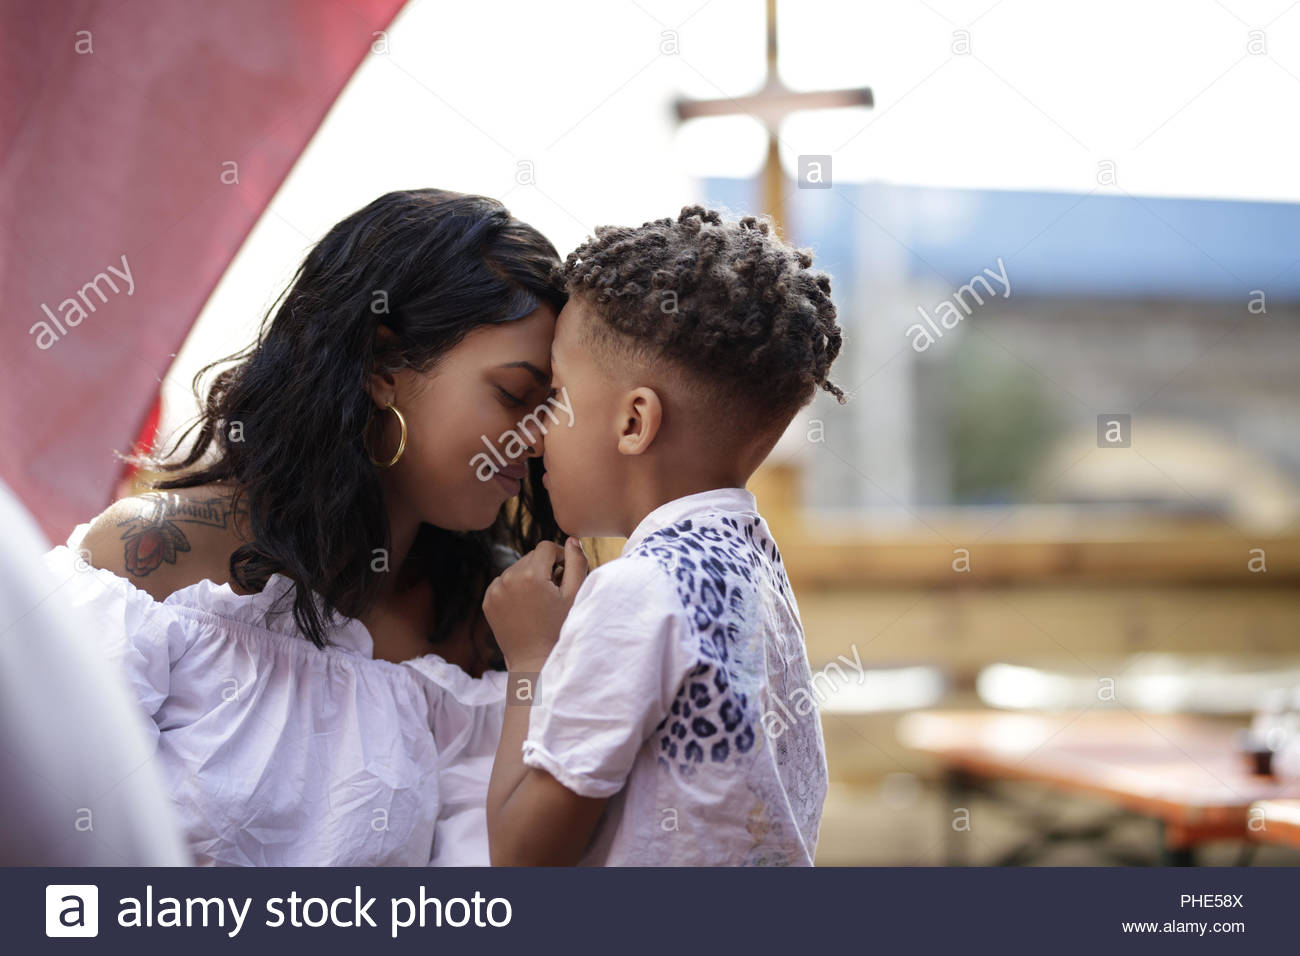 Mother and son spending time together - Stock Image